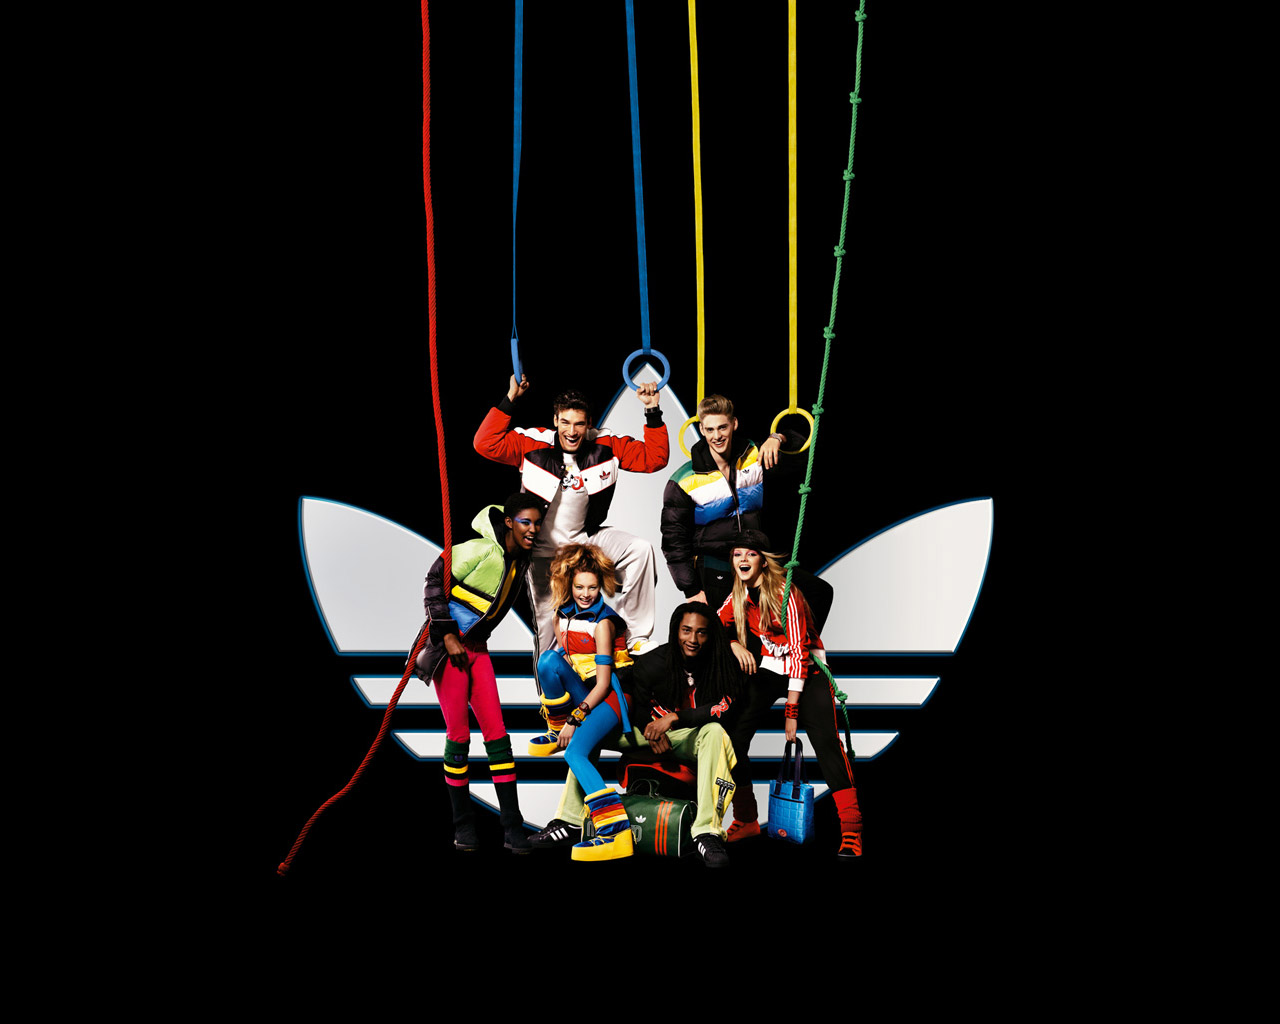 212 Cool For Adidas Wallpapers 1280x1024